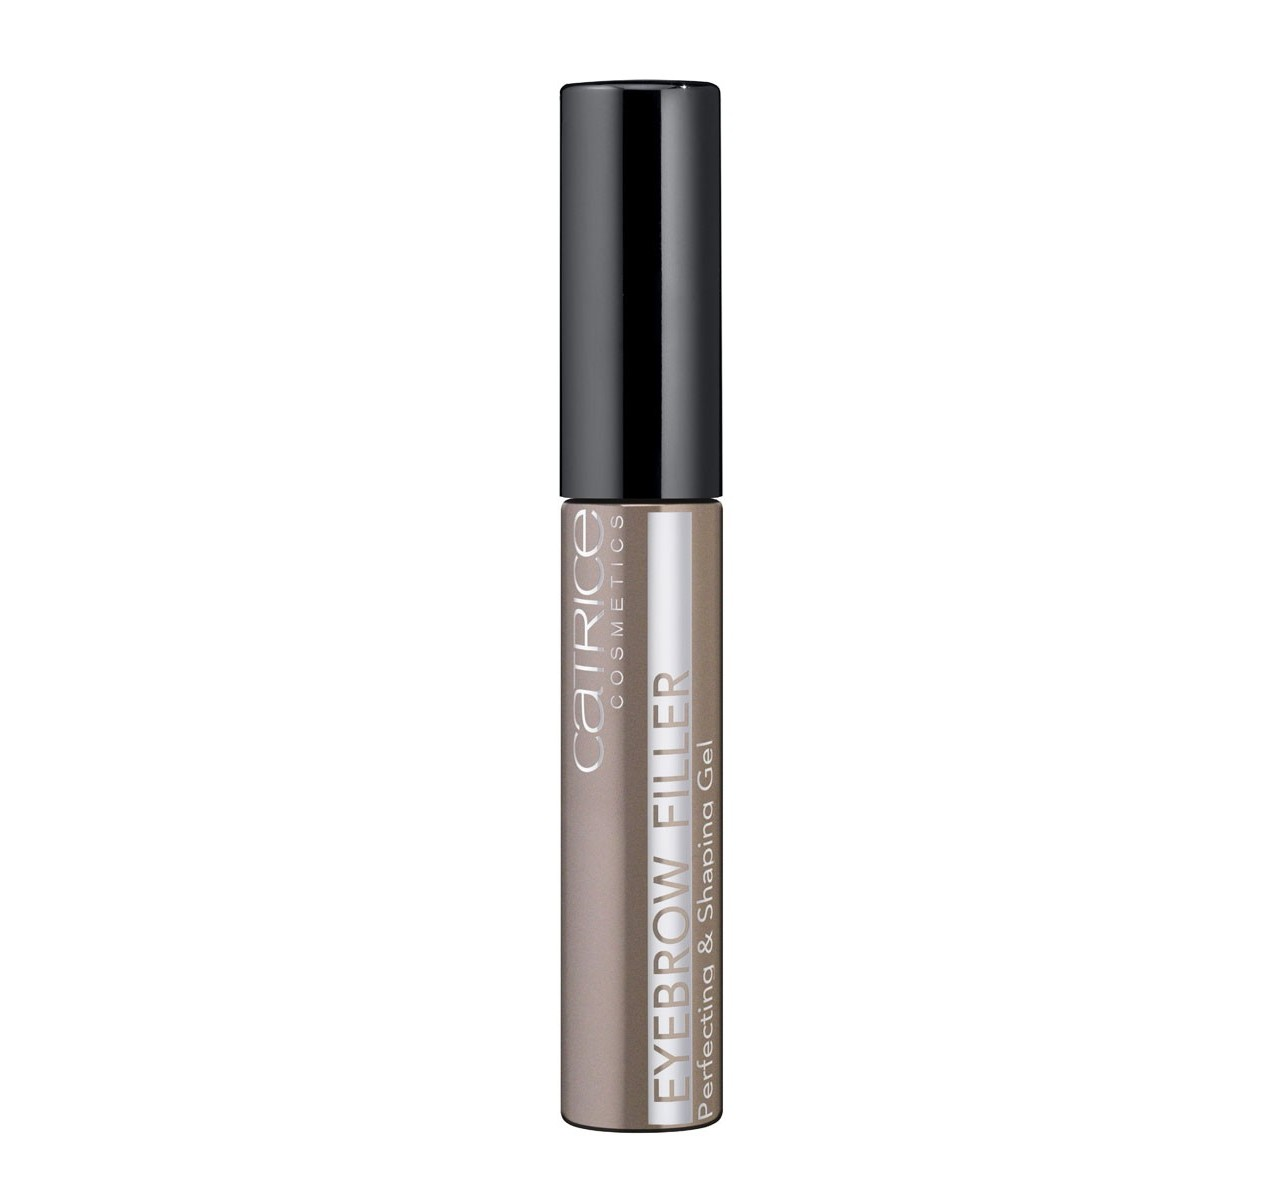 CATRICE EYEBROW FILLER PERFECTING & SHAPING GEL RELLENADOR DE CEJAS 20 6.5ML